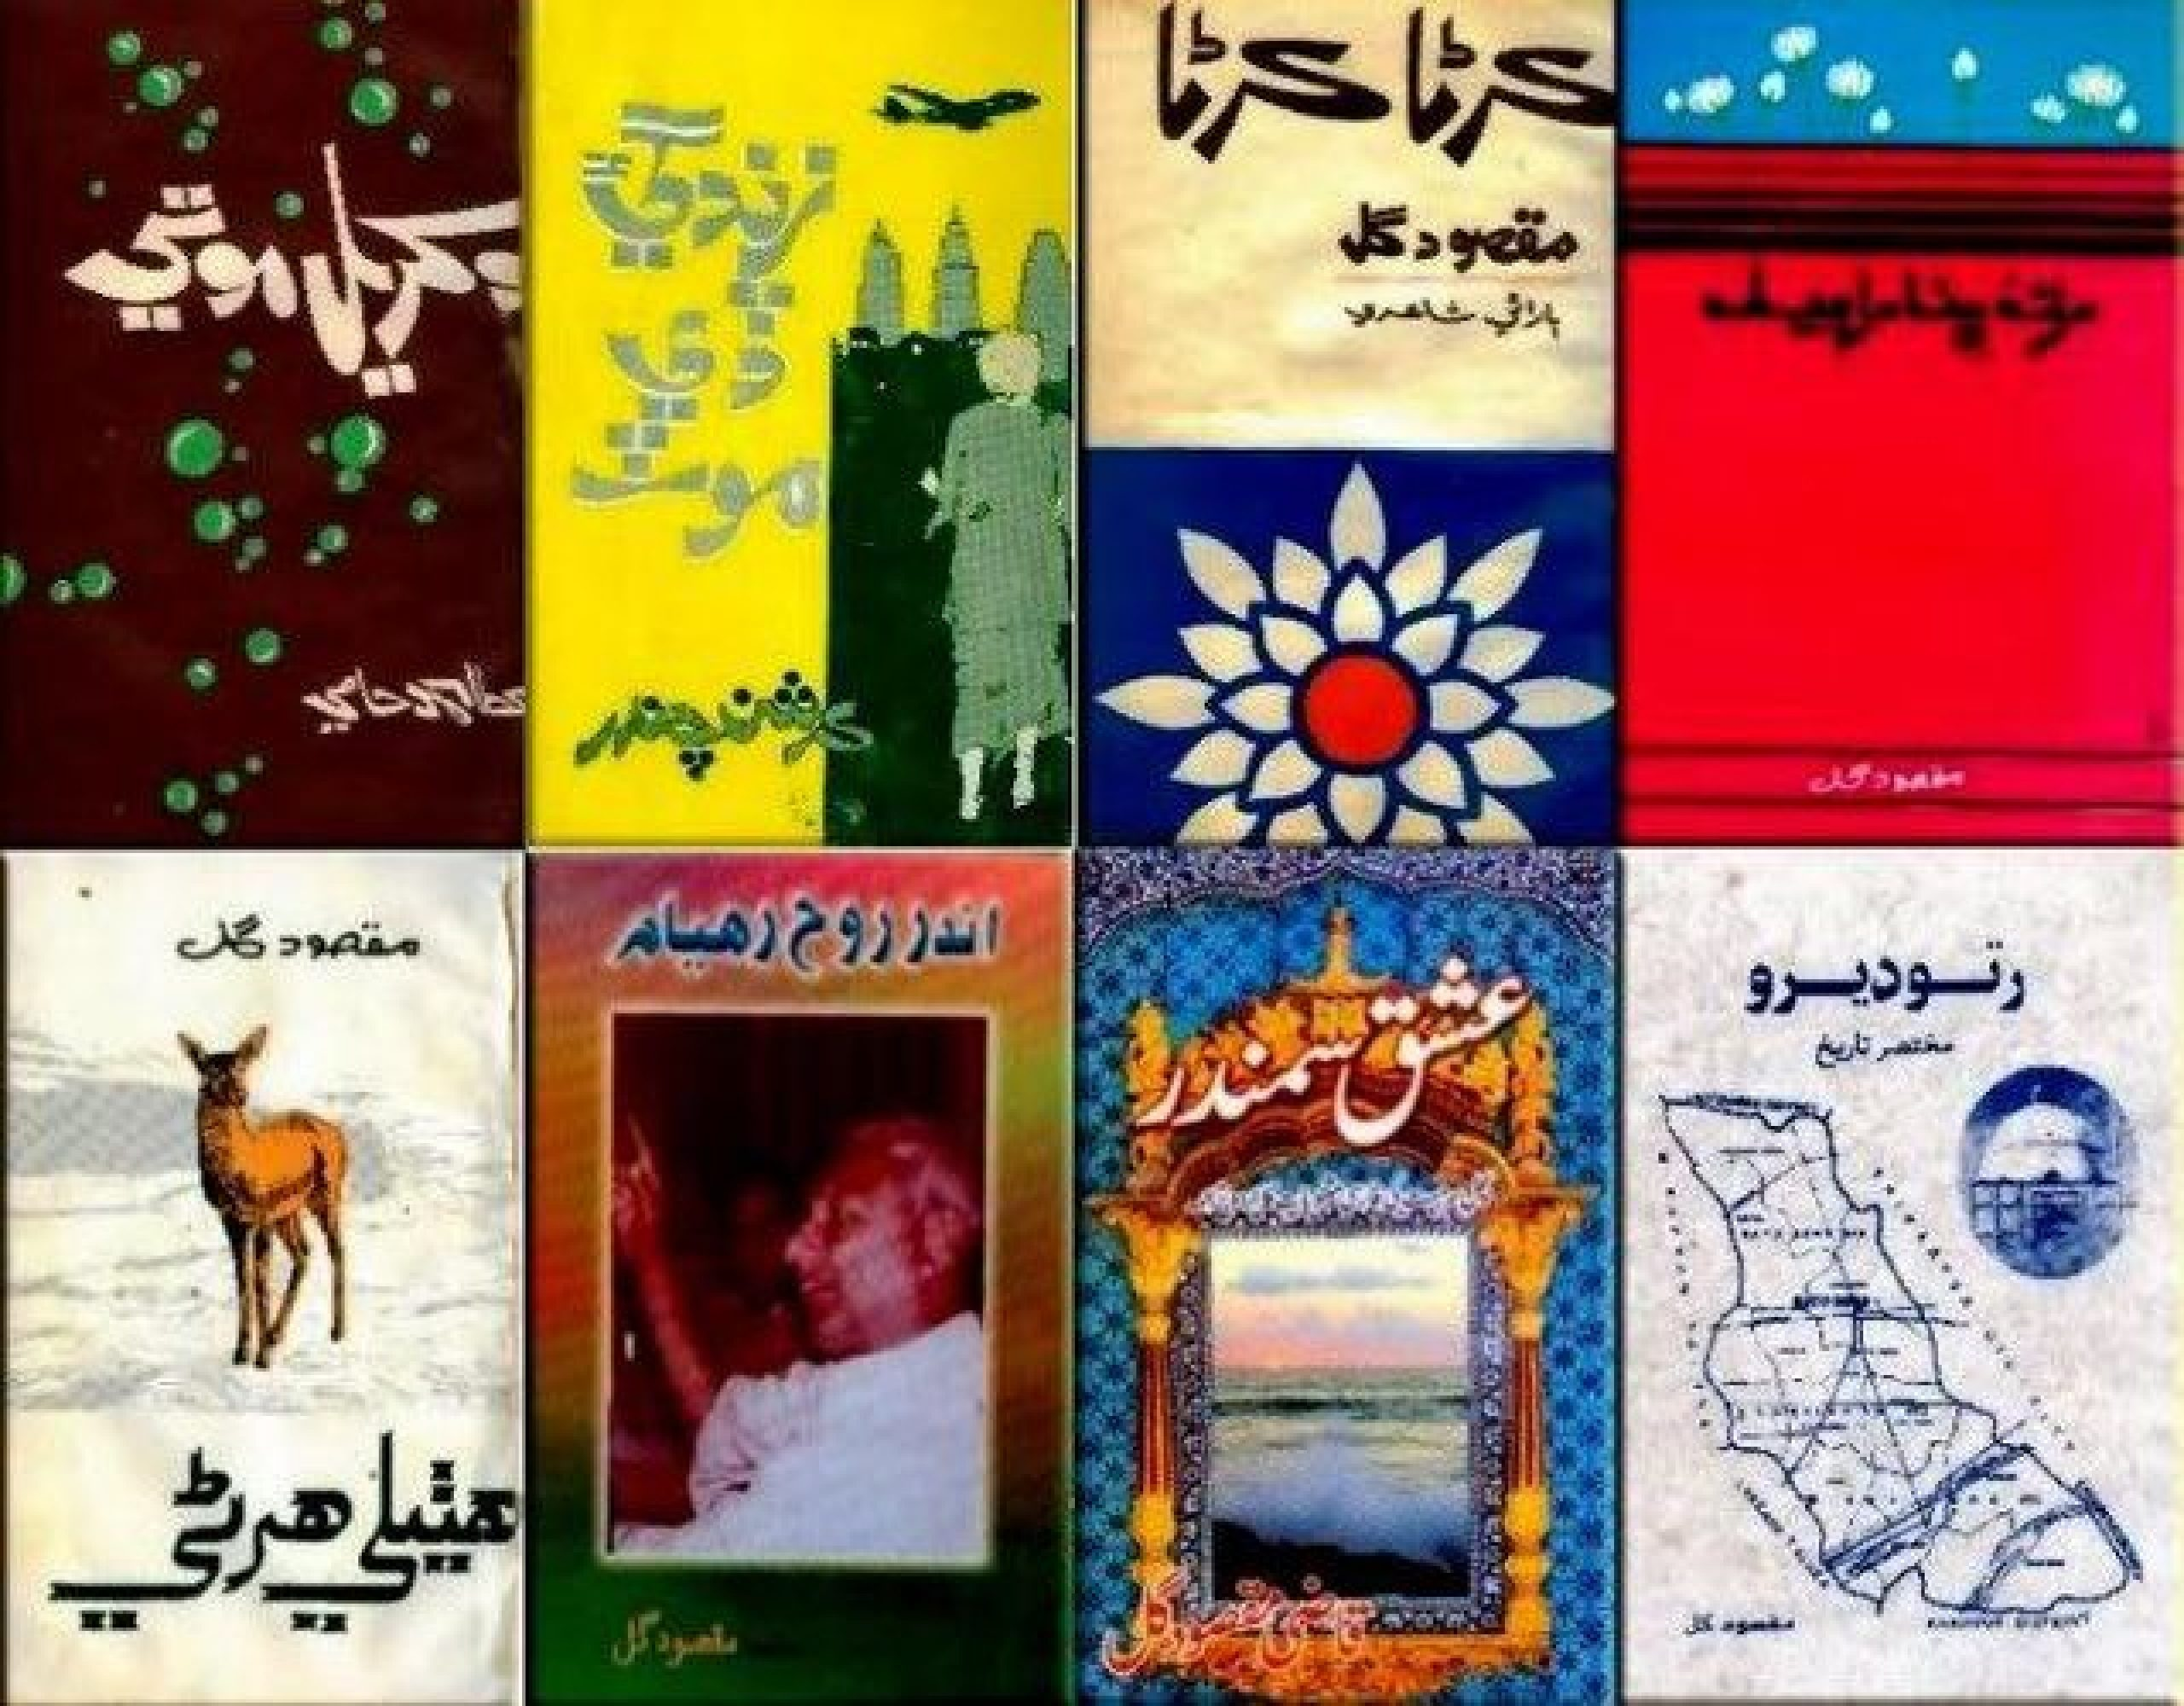 Words Are Pearls, Full of Colors And Whiff- Sindh Courier-Some of the books of MAQSOOD GUL